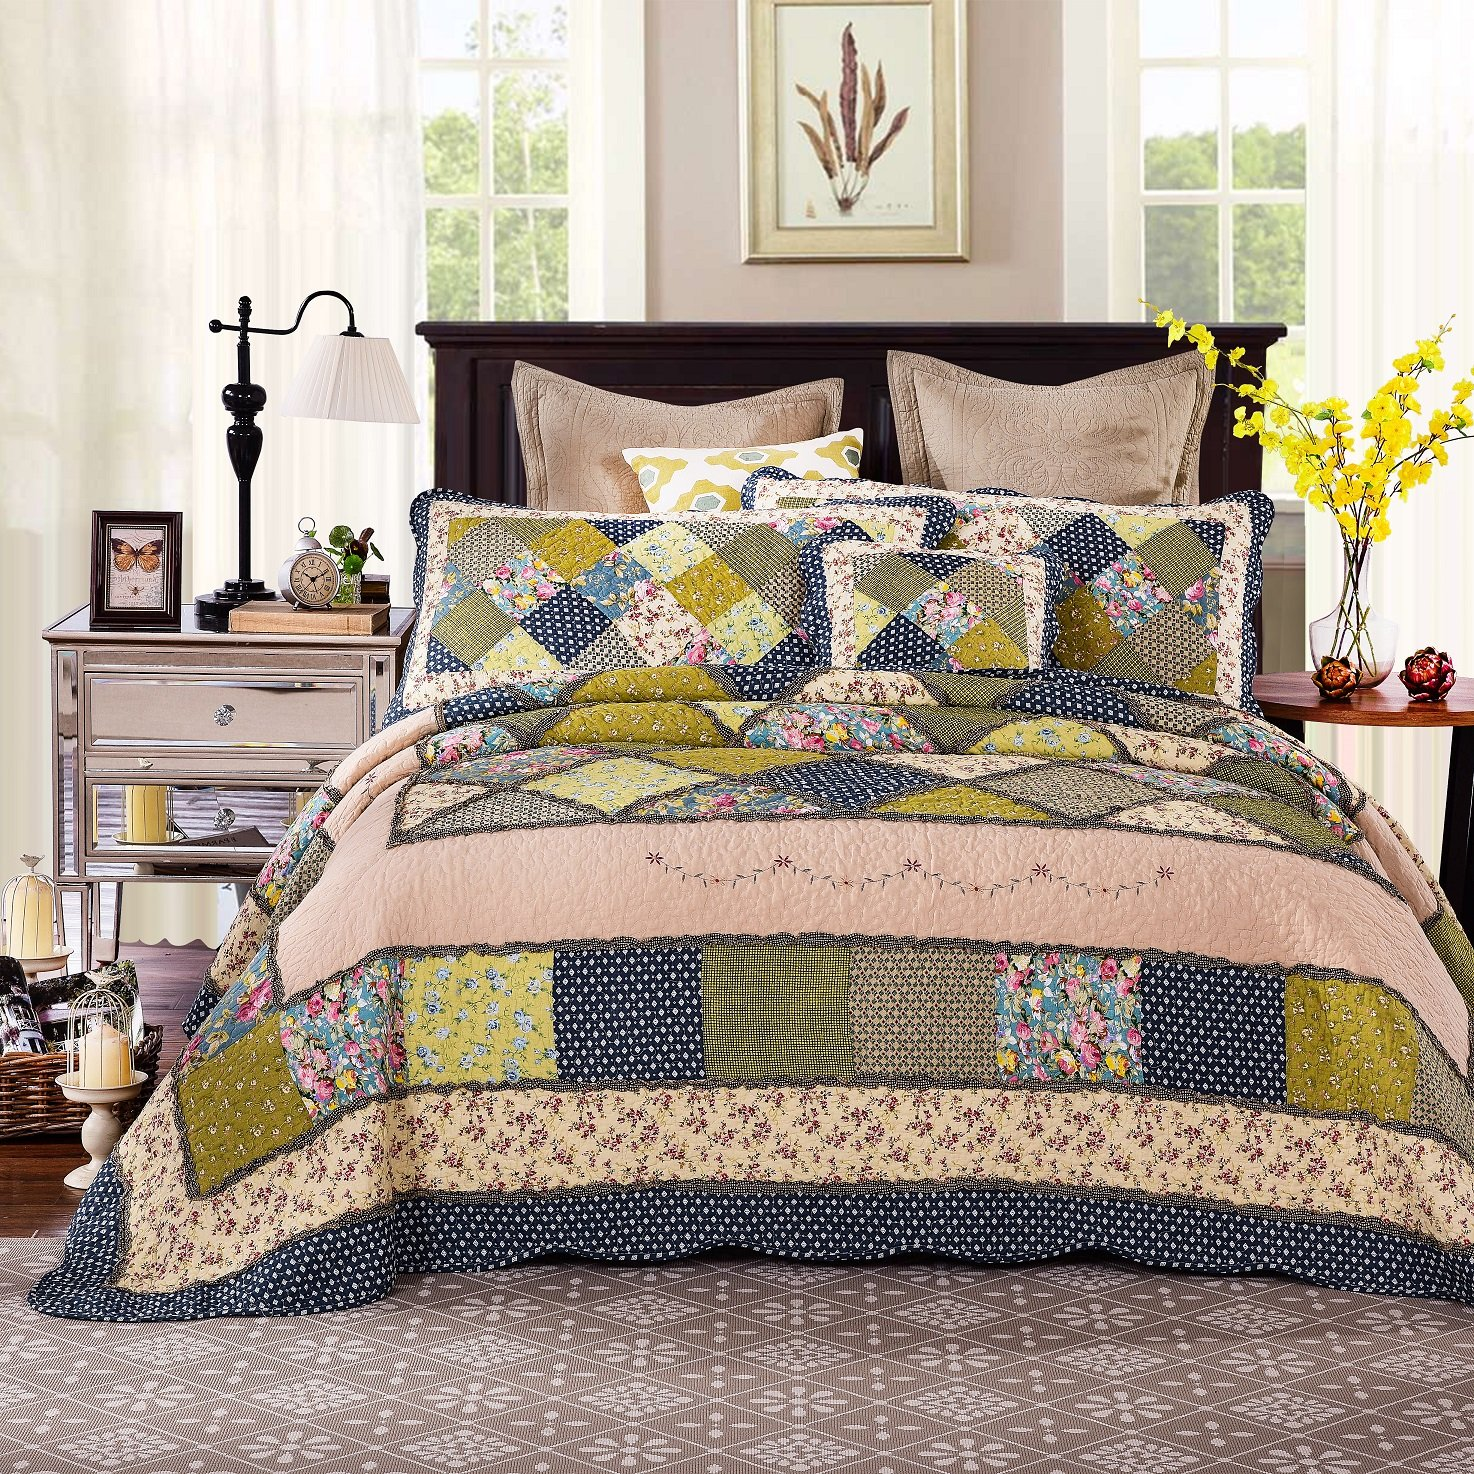 Tache 5 Pieces Calming Floral Patchwork Spring Shower Reversible Quilt Bedspread Set, Cal King by Tache Home Fashion